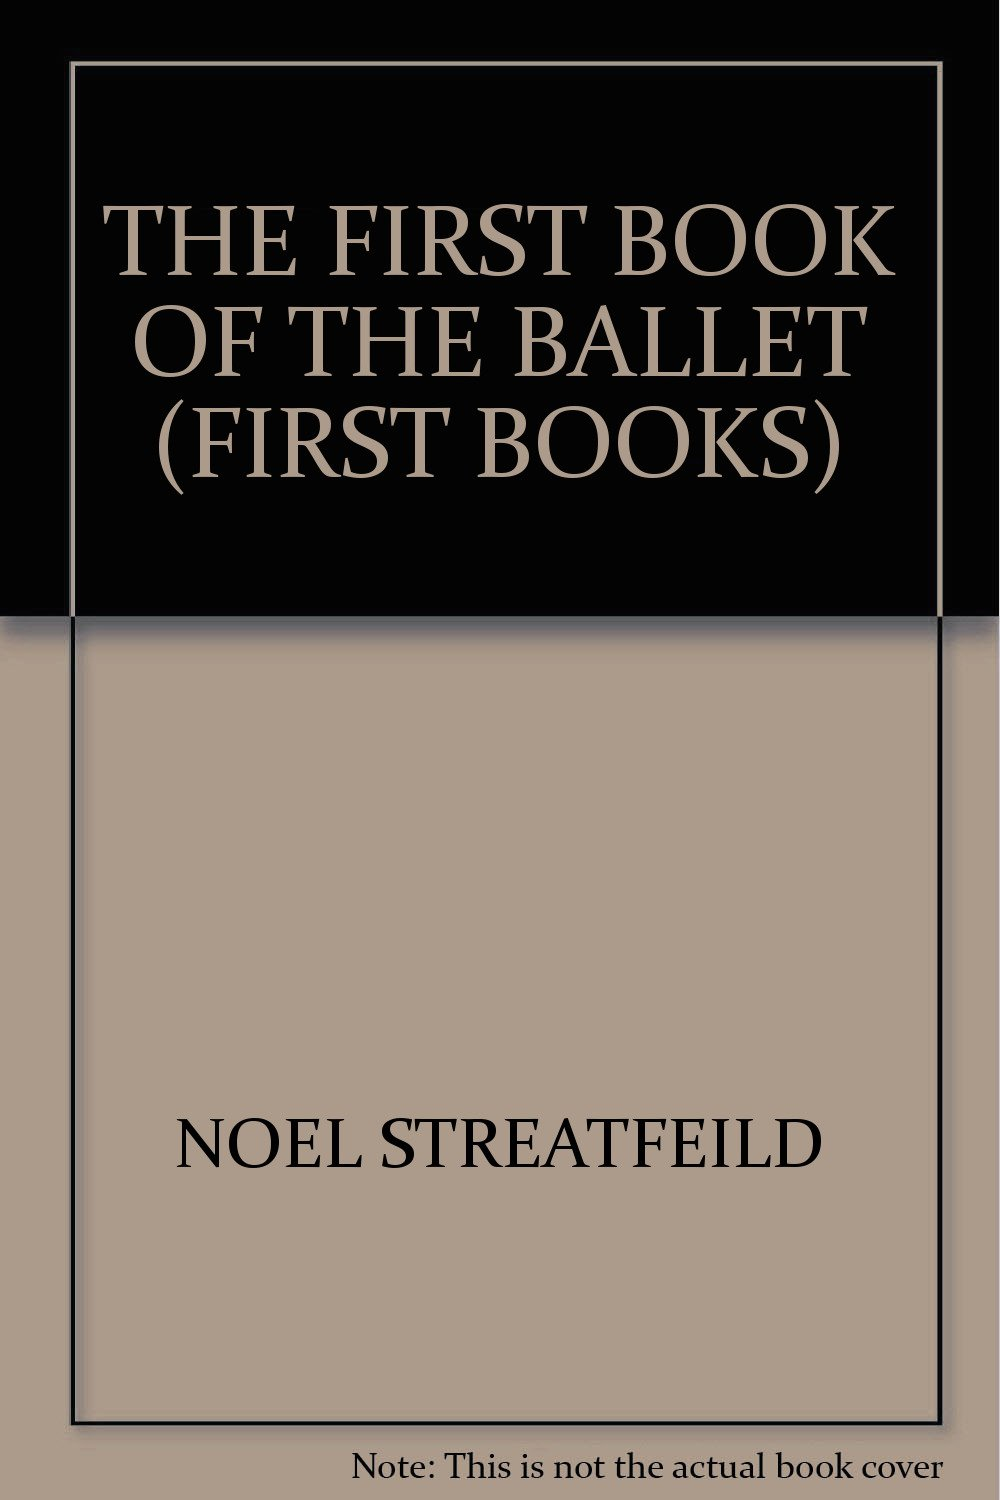 The first book of the ballet (First books)